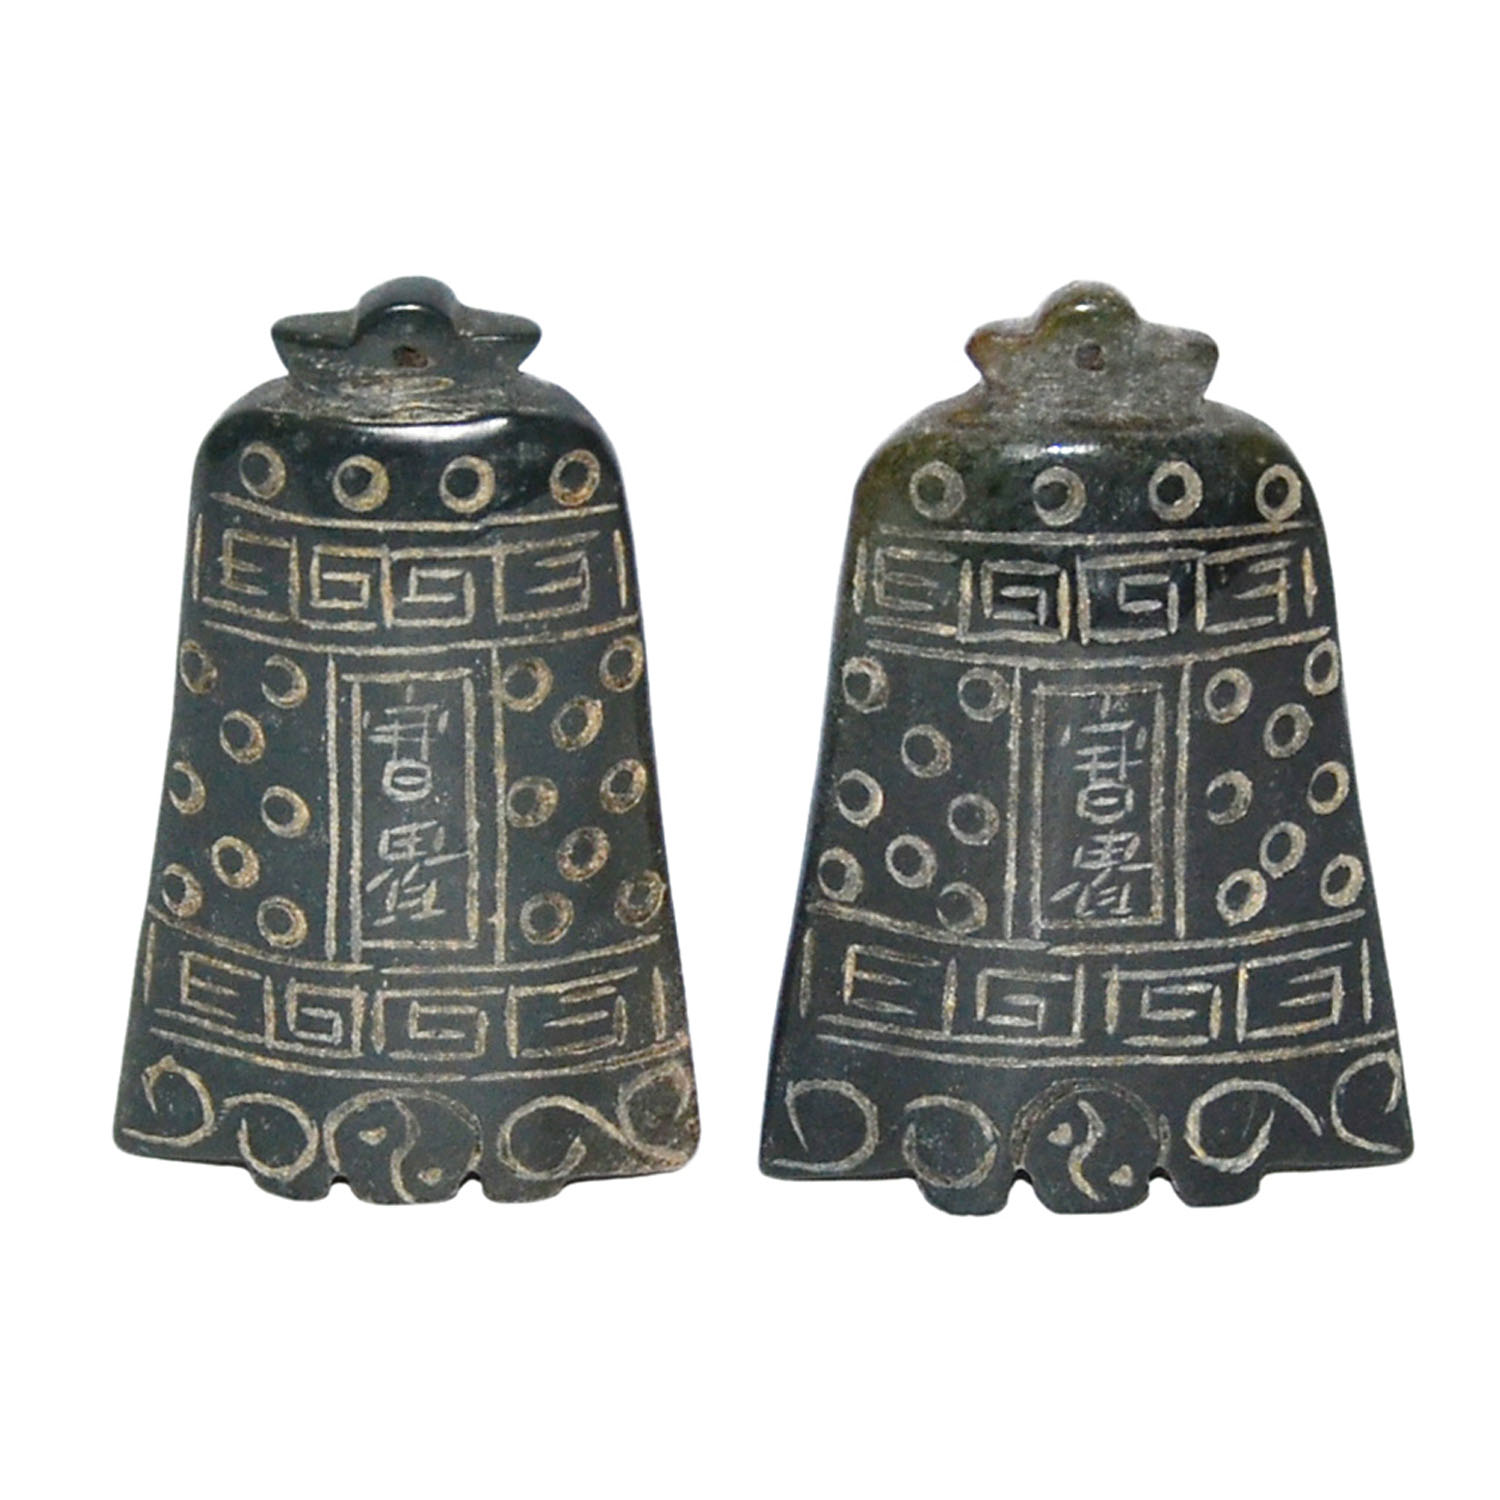 Lot 30 - 墨玉雕編鐘一對 A Pair of Carved Dark Jade Ritual Bell  Height: 2¾ in (7 cm) x 2 Total Weight: 152 g